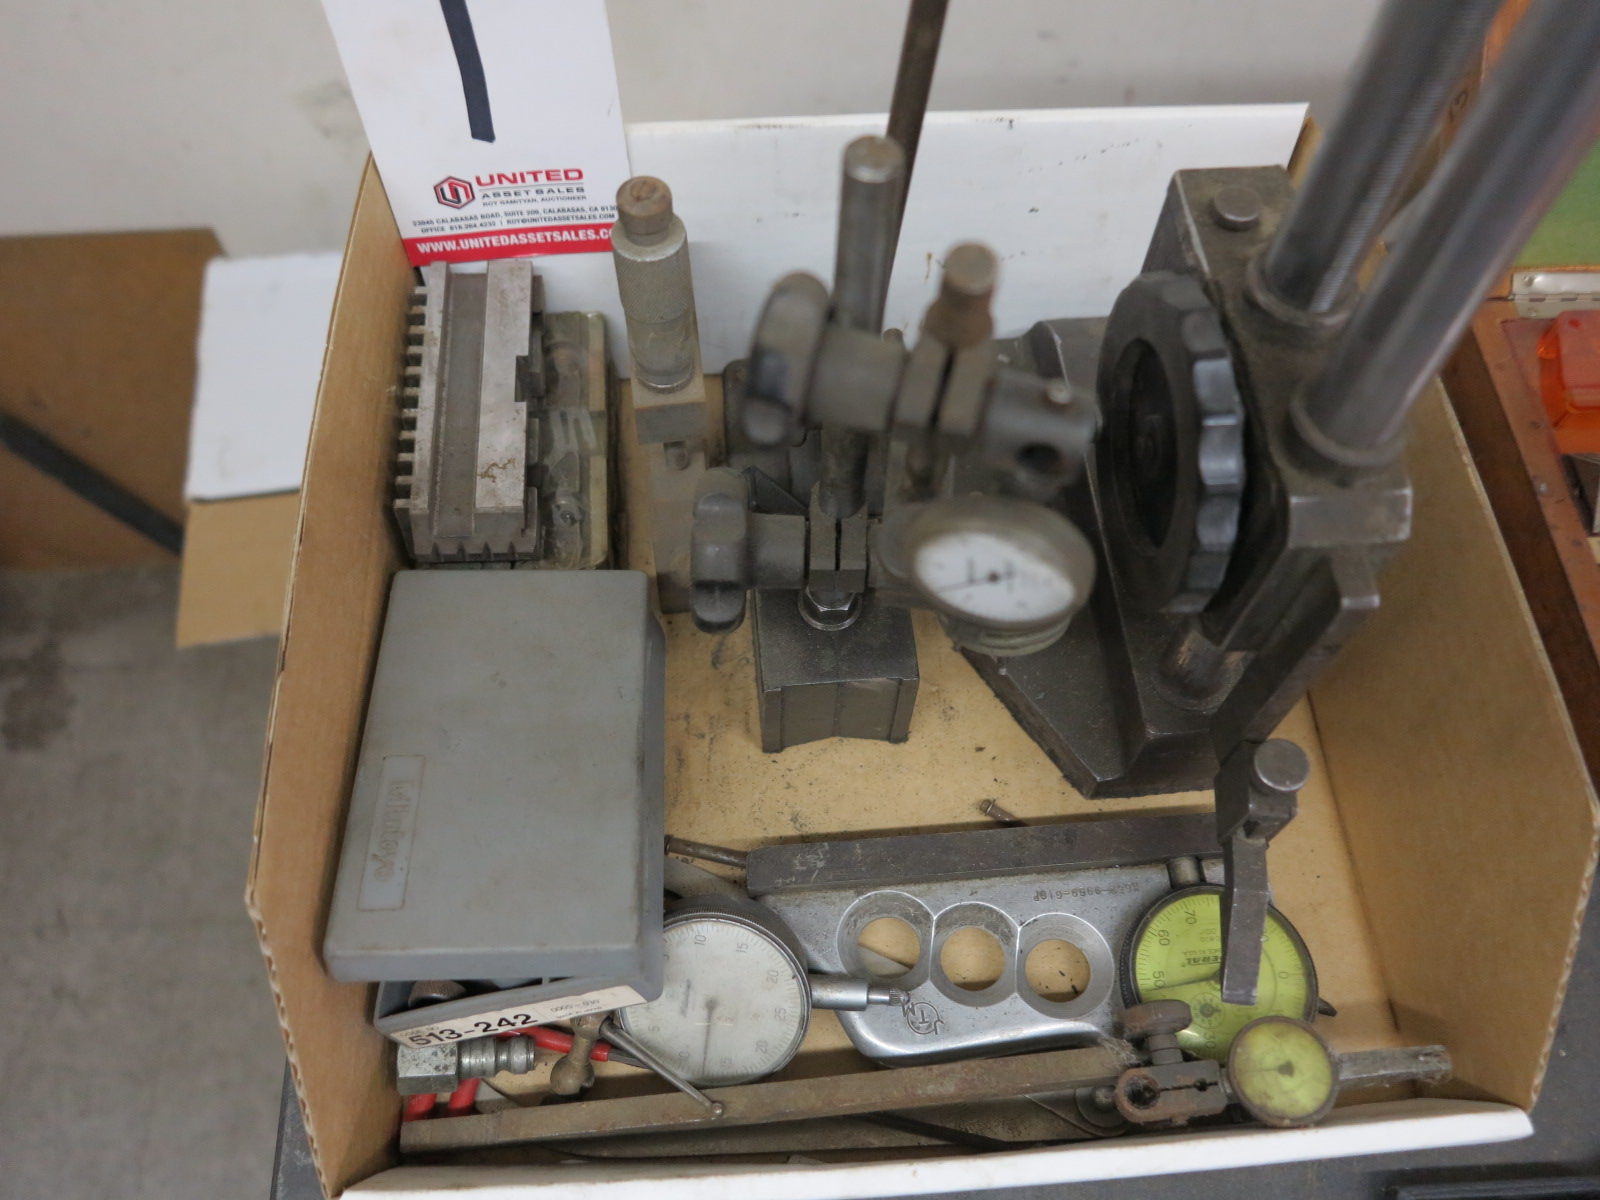 LOT - MISC INSPECTION ITEMS, TO INCLUDE: CHUCK JAWS, DIAL INDICATORS, ETC. - Image 2 of 2